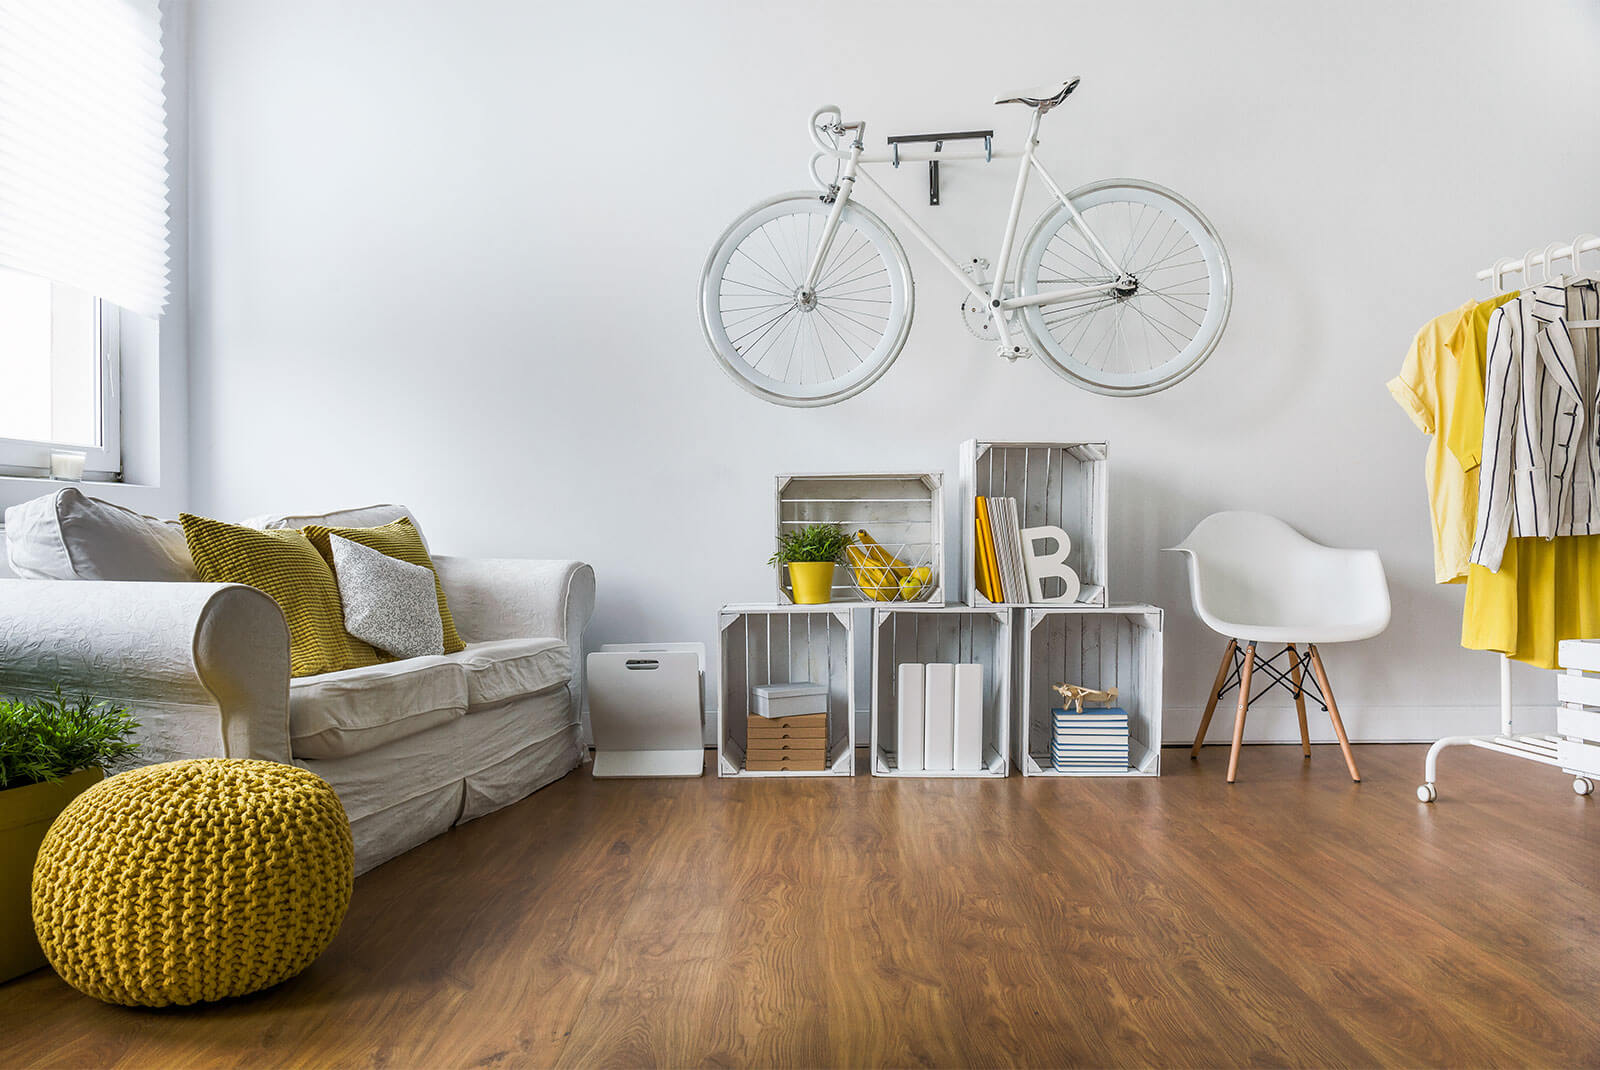 bike in studio apartment